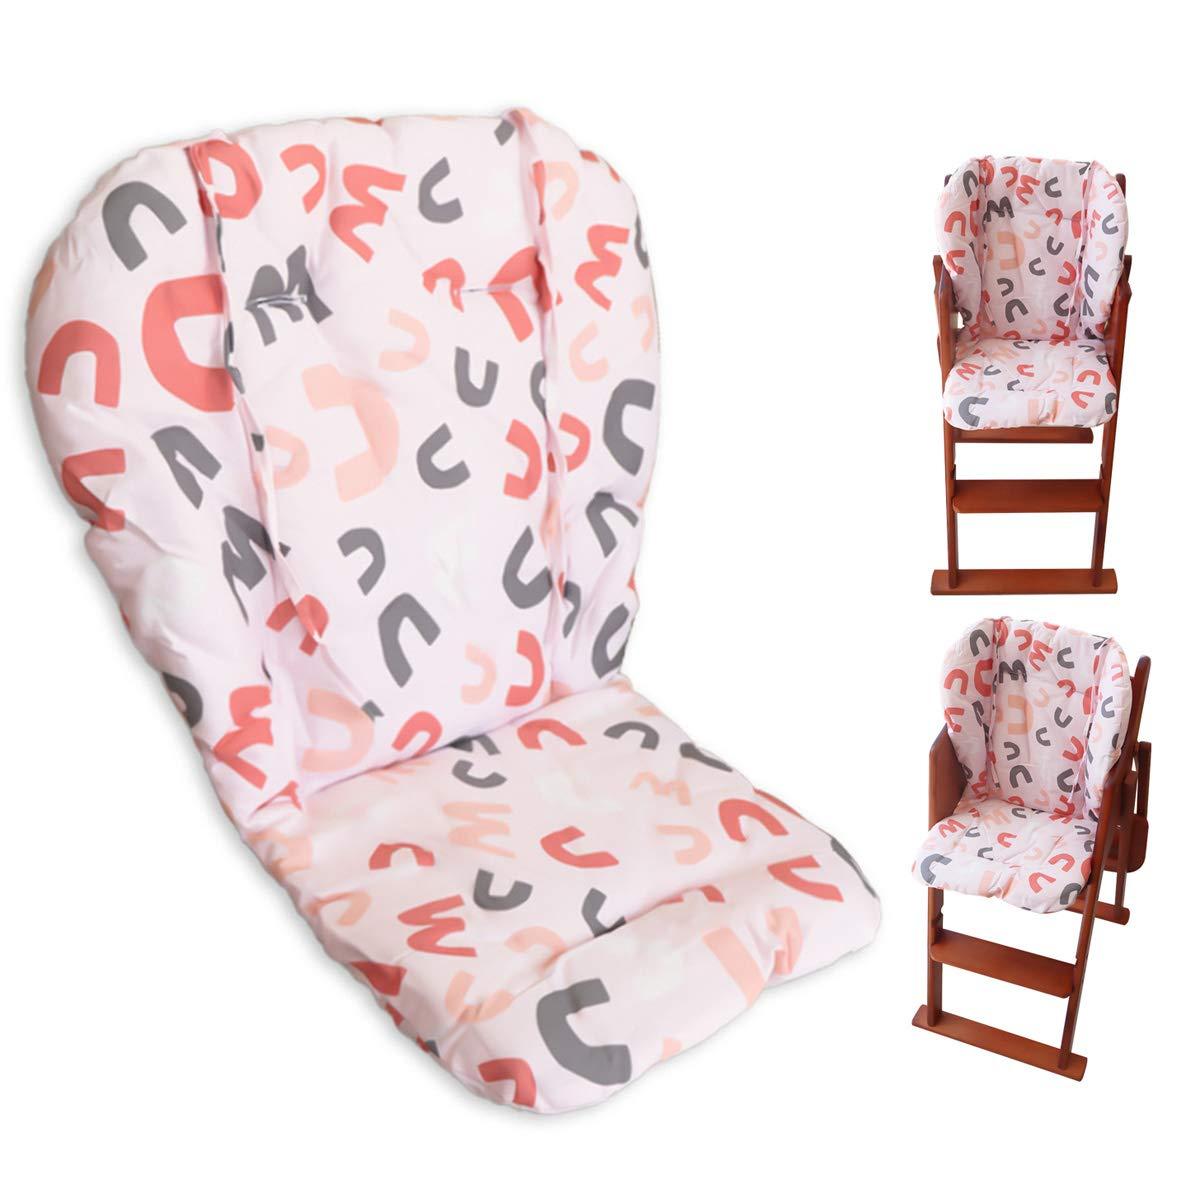 2 Pieces High Chair Pad Ancho Color Stars Pattern Highchair Seat Cushion Protective Film Breathable Pad with Baby High Chair Seat Belt